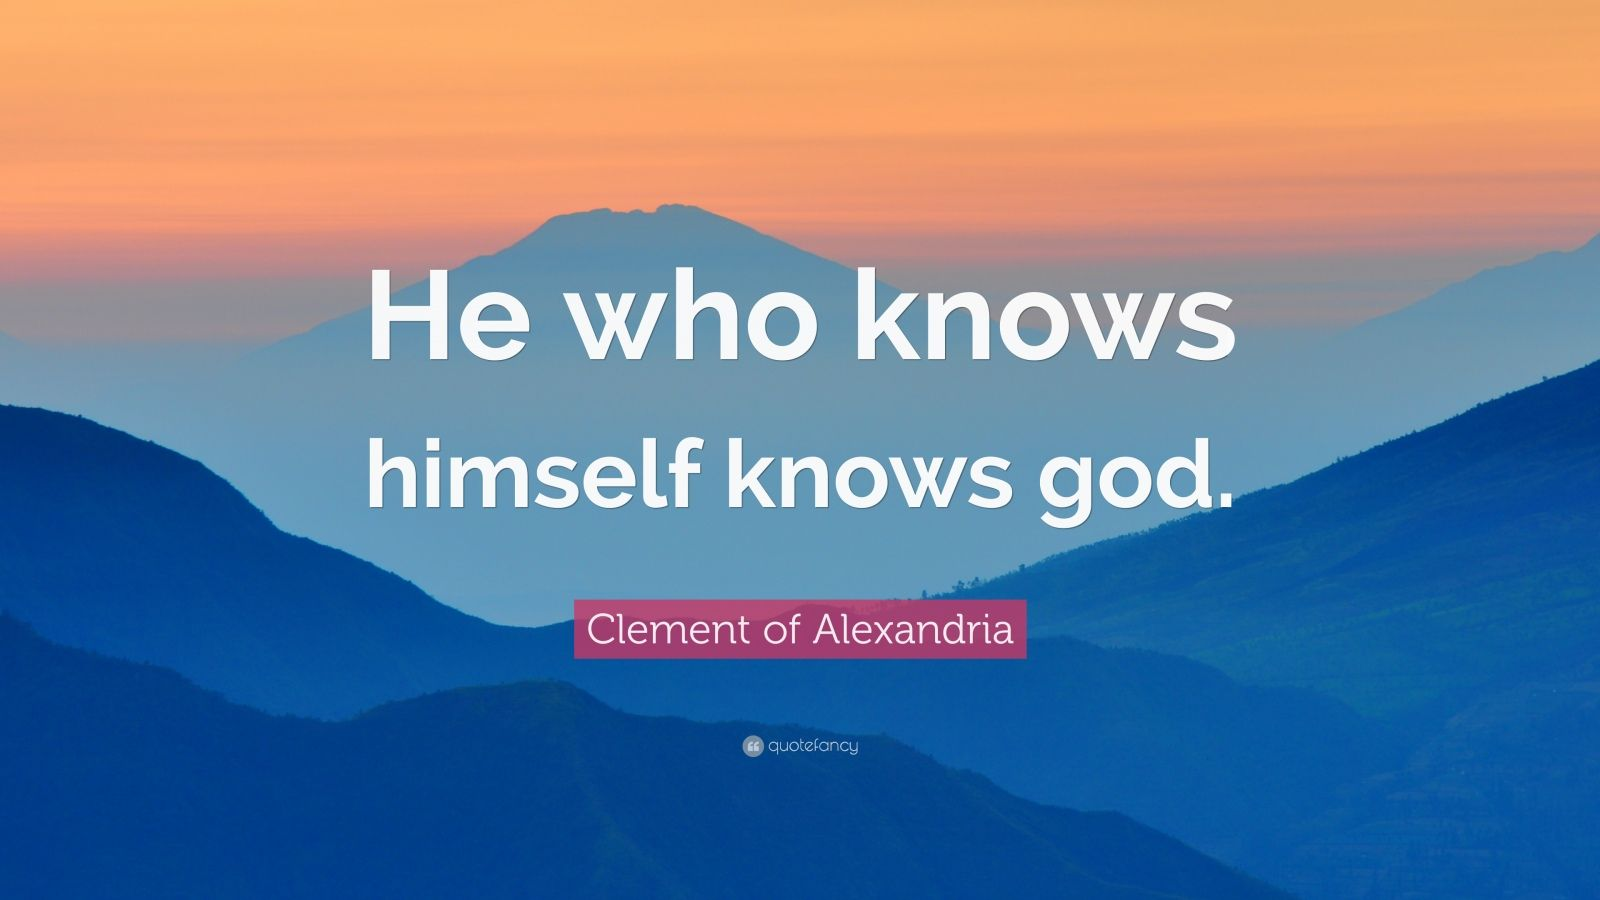 Steve Jobs Wallpaper Quotes Clement Of Alexandria Quote He Who Knows Himself Knows